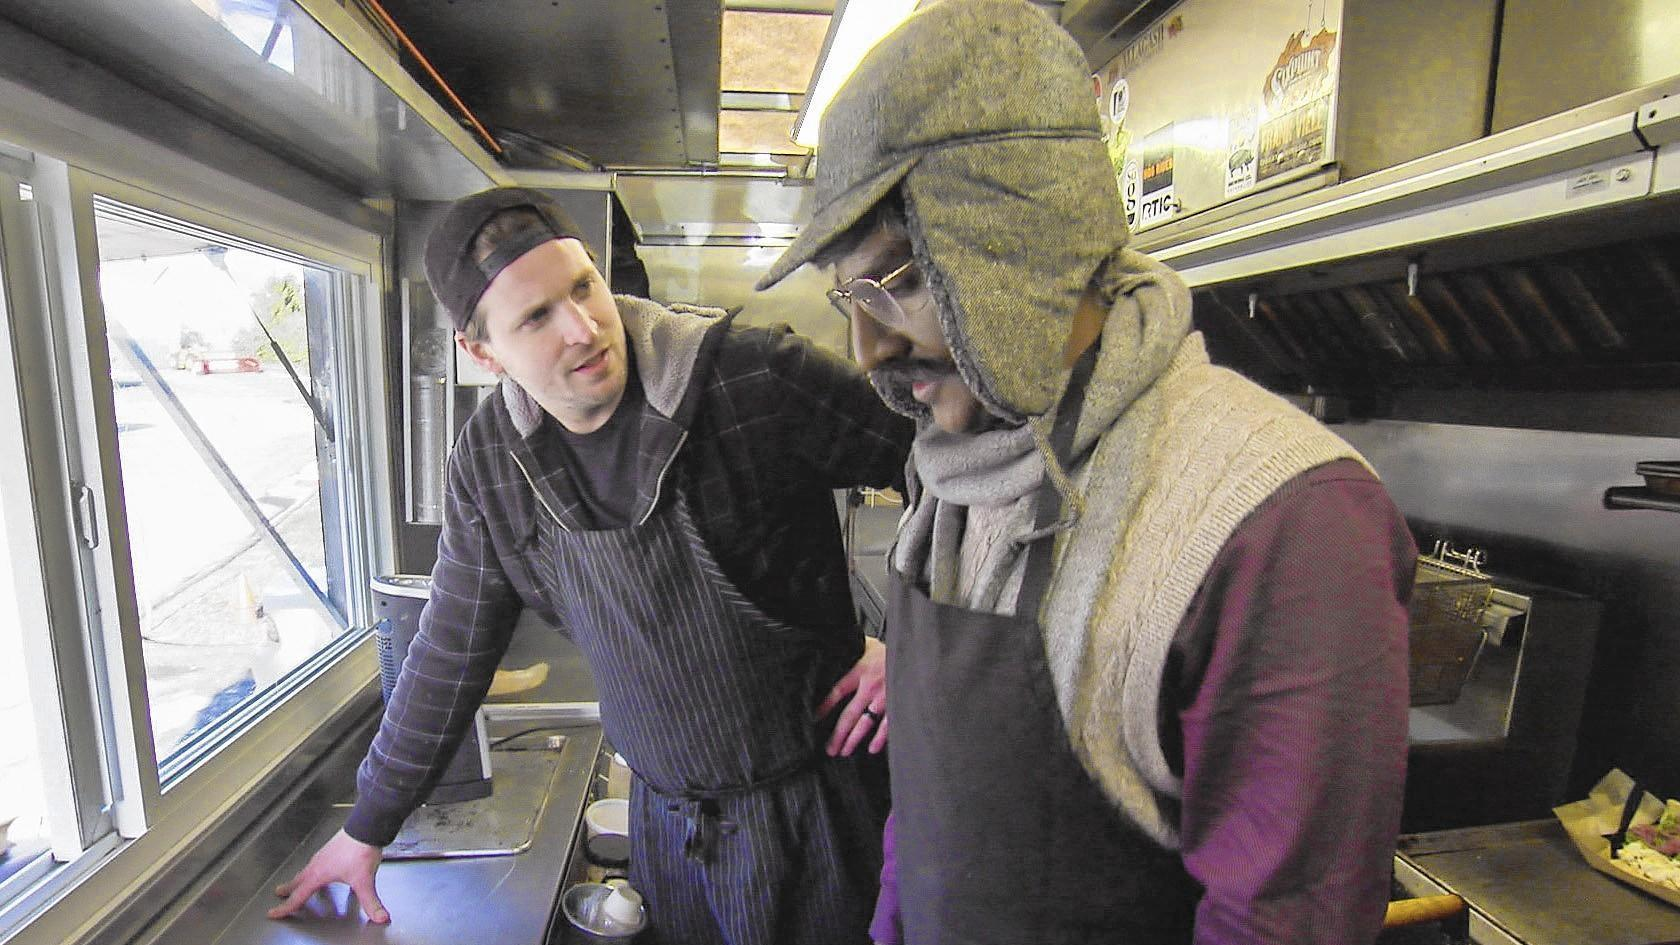 Mercado Food Truck To Be On 'Undercover Boss' With Celebrity Chef Marcus Samuelsson